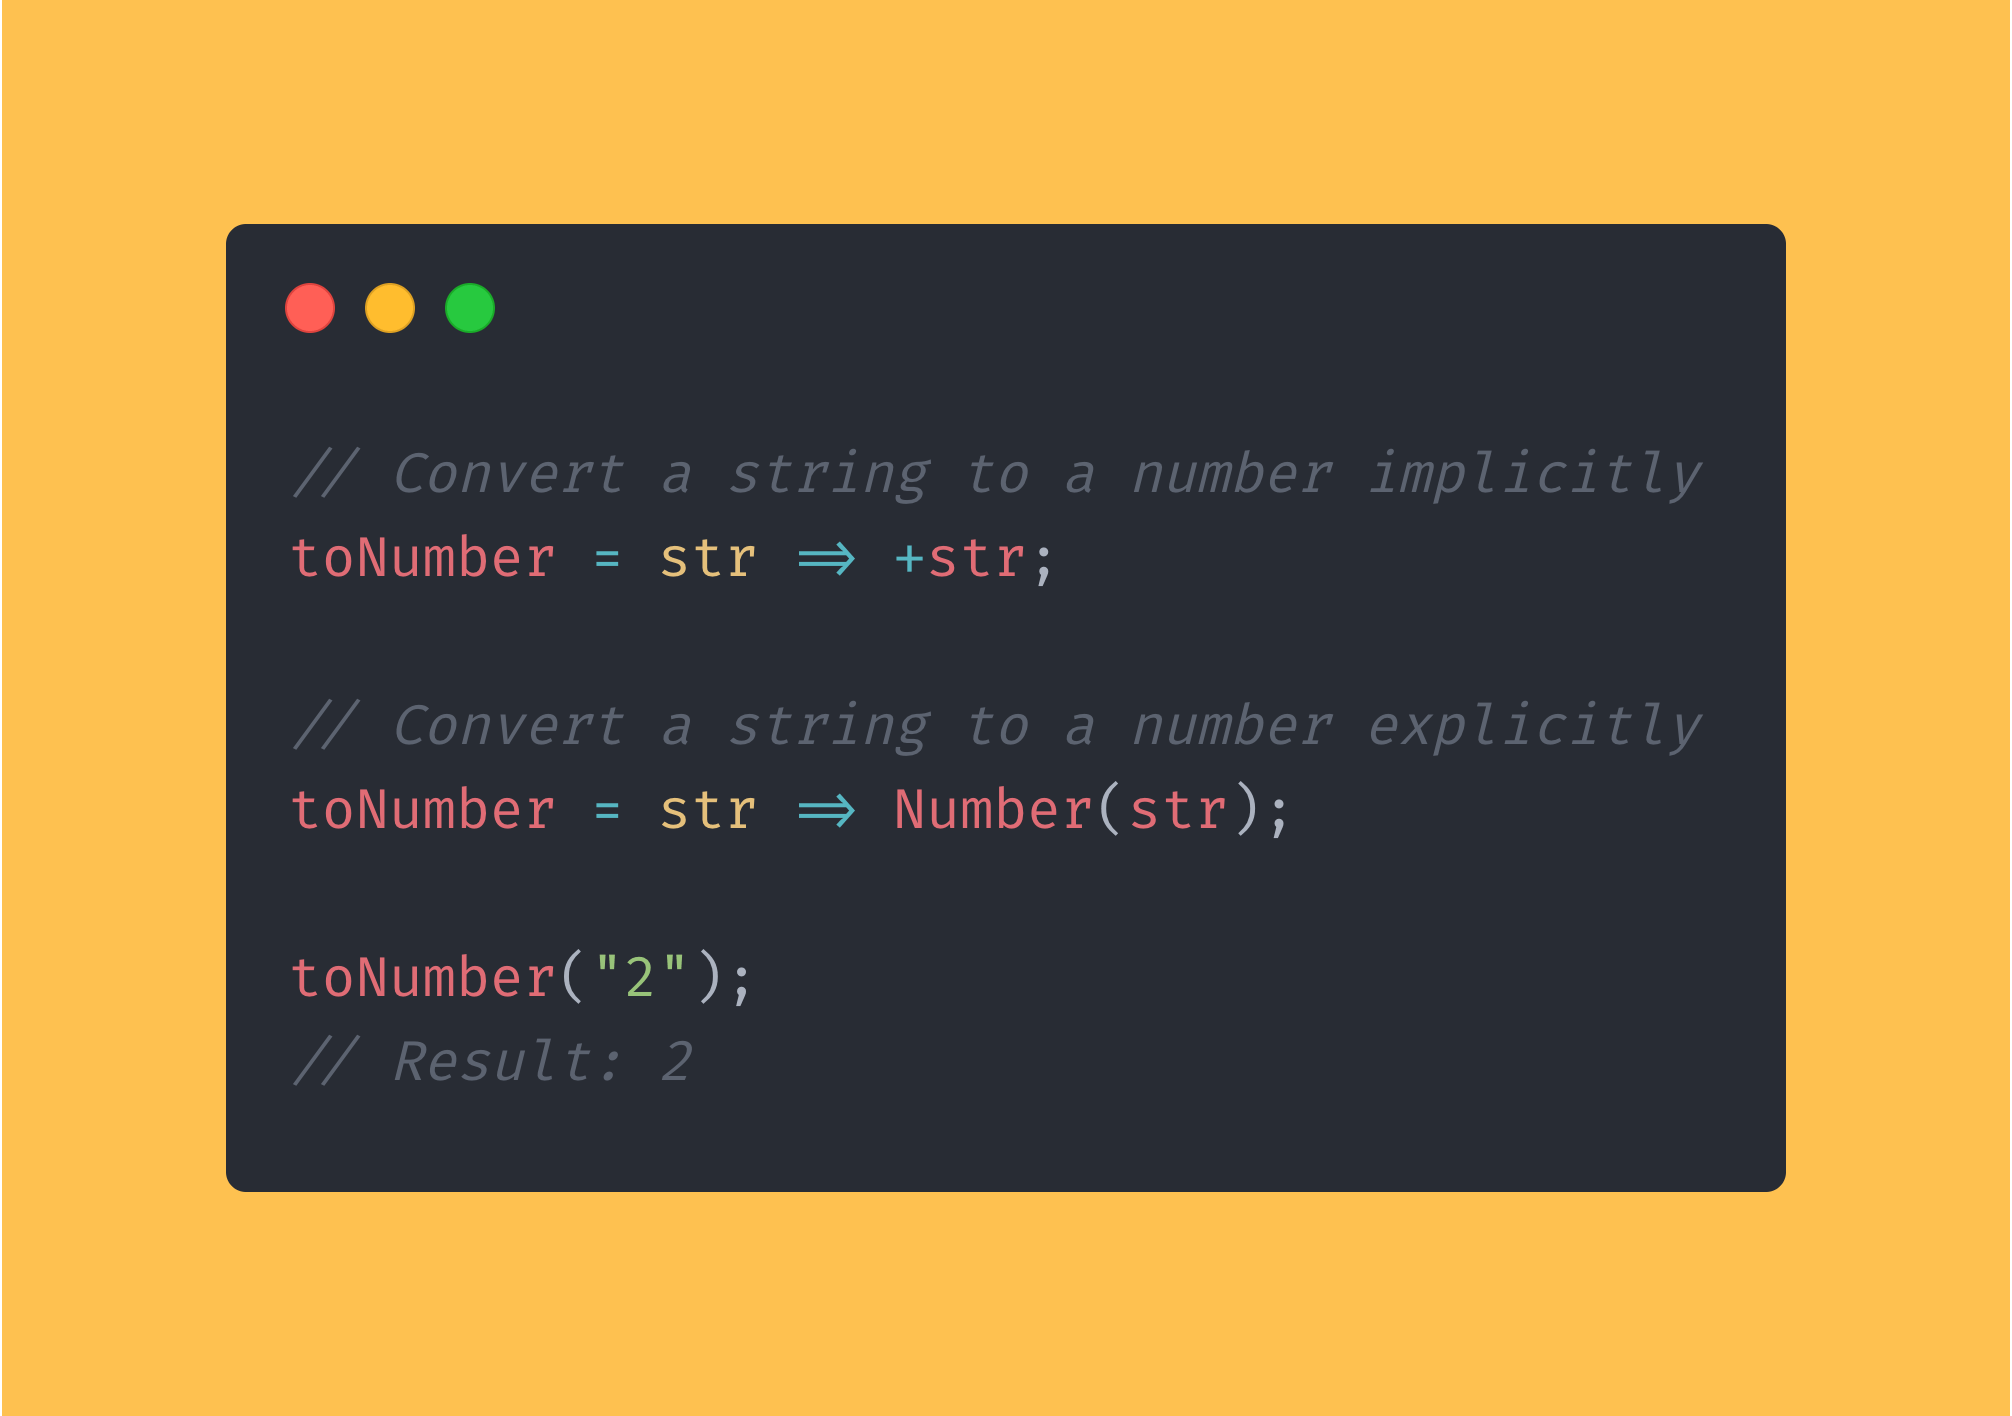 JavaScript function that converts a string containing a number to an actual number